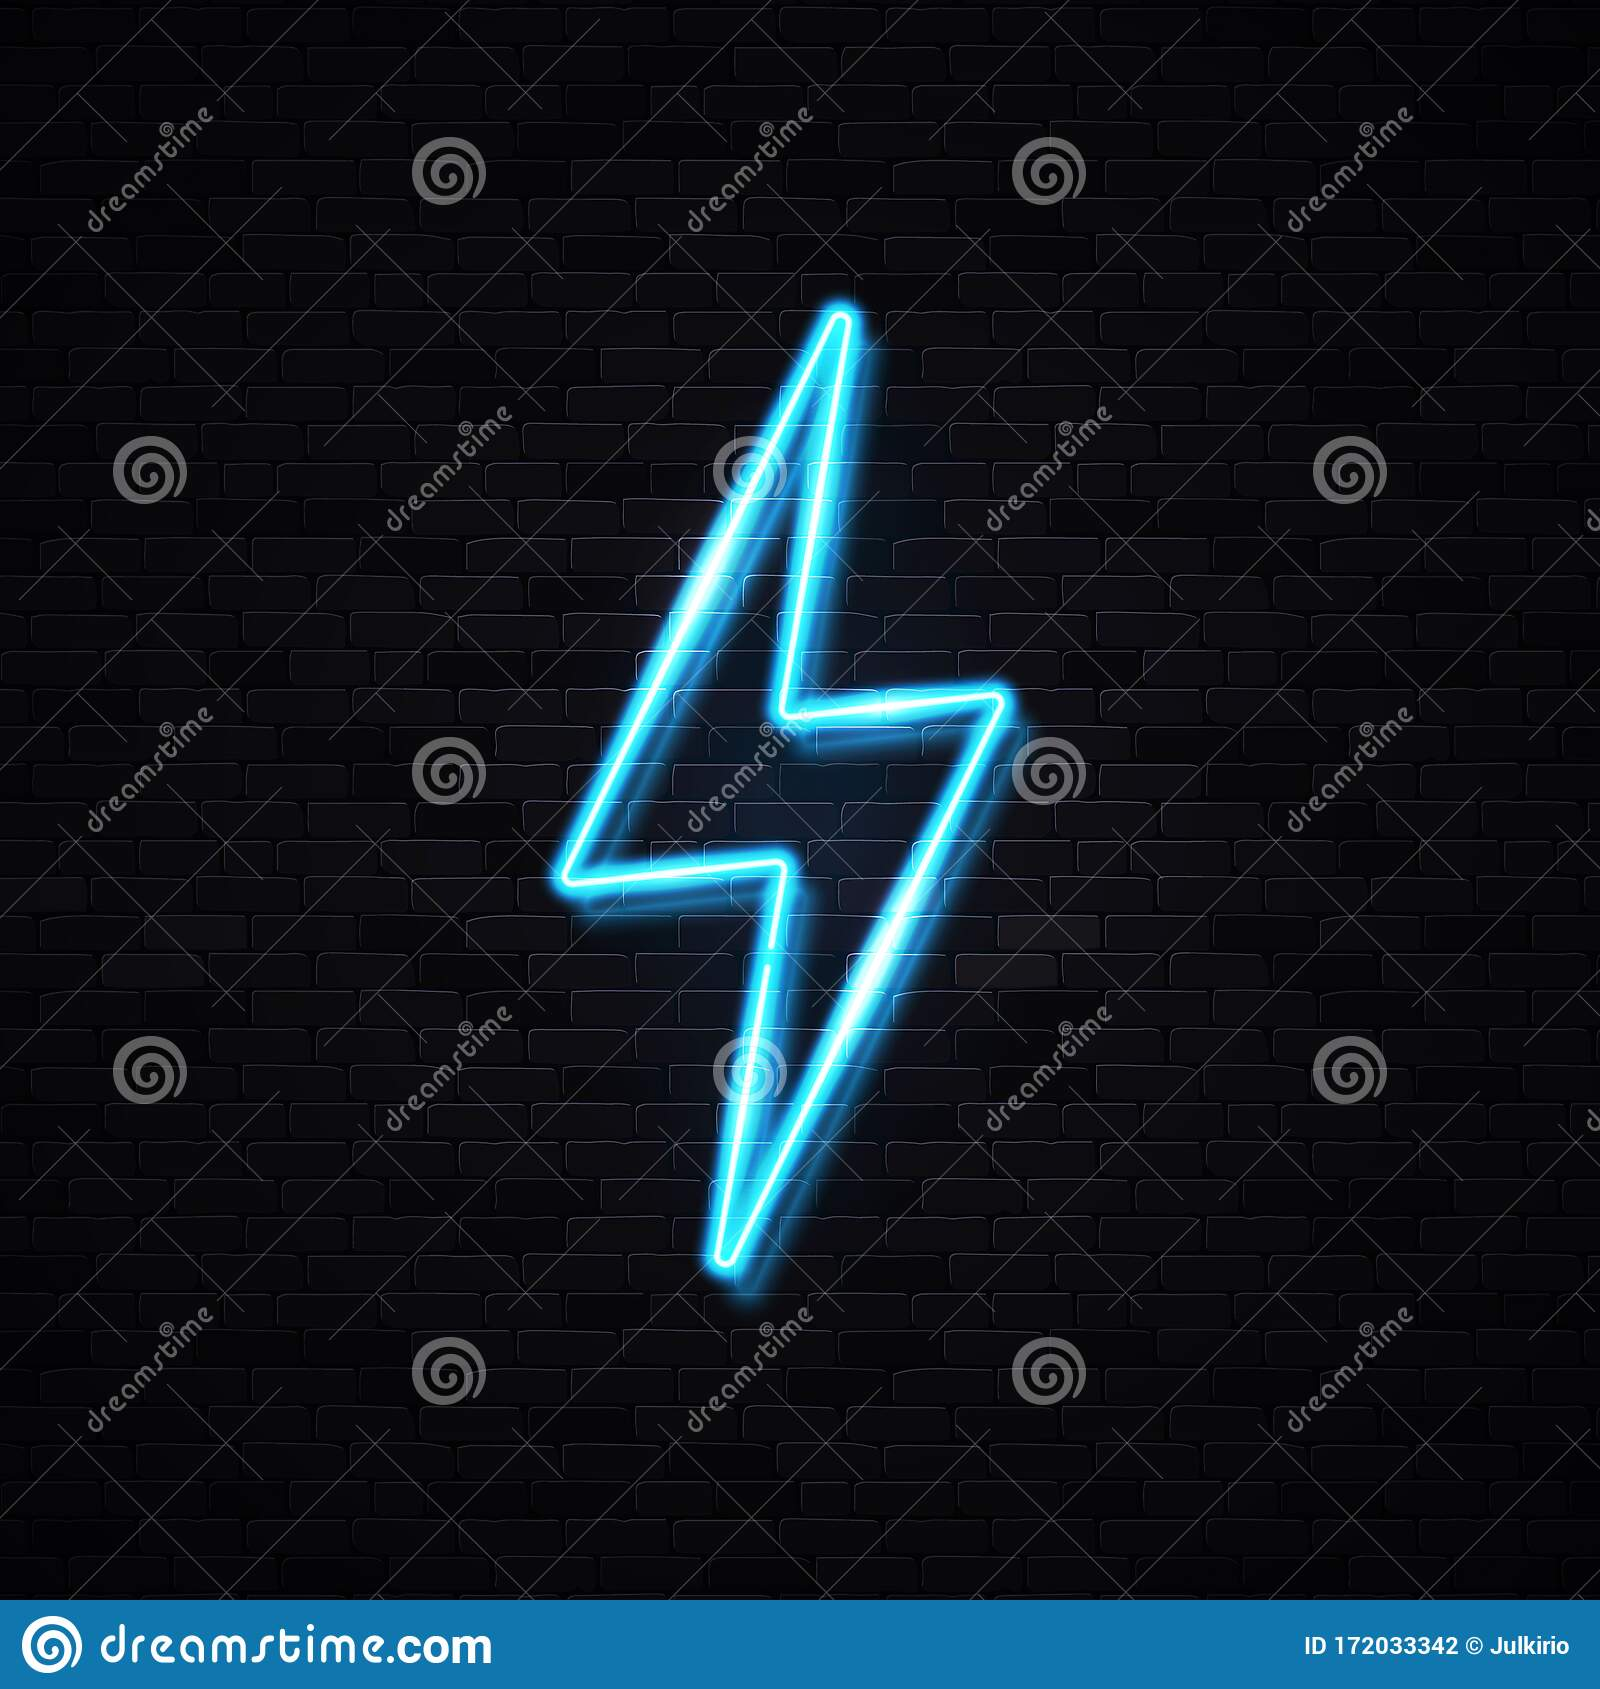 Realistic Isolated Neon Sign Of Lightning Bolt. Stock Vector ...